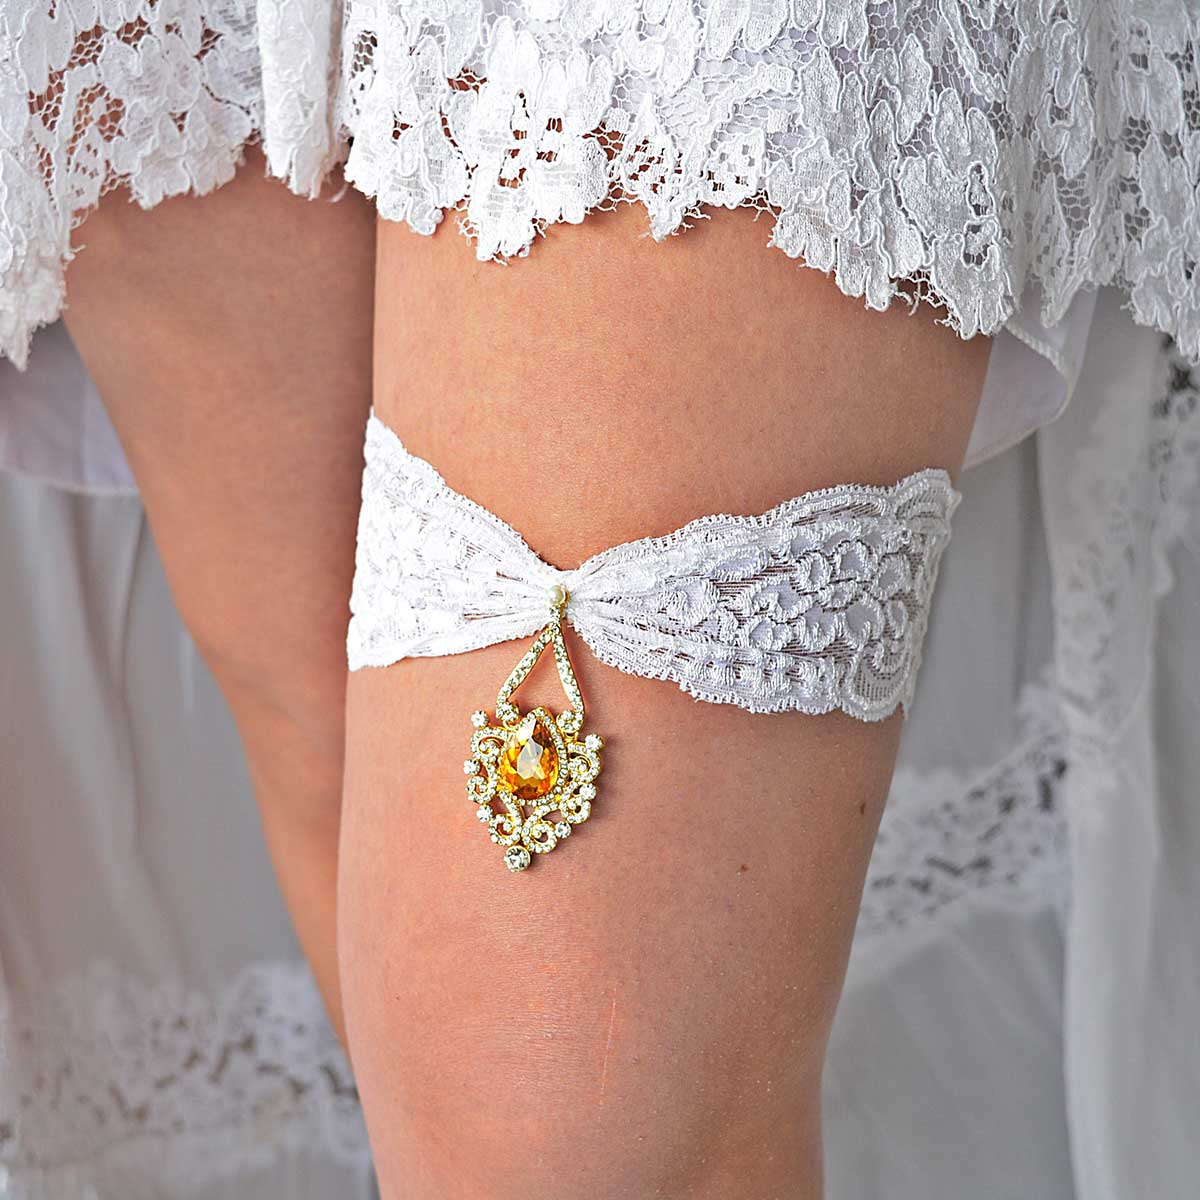 Gold & Yellow Rhinestone Bridal Garter Set With White Lace